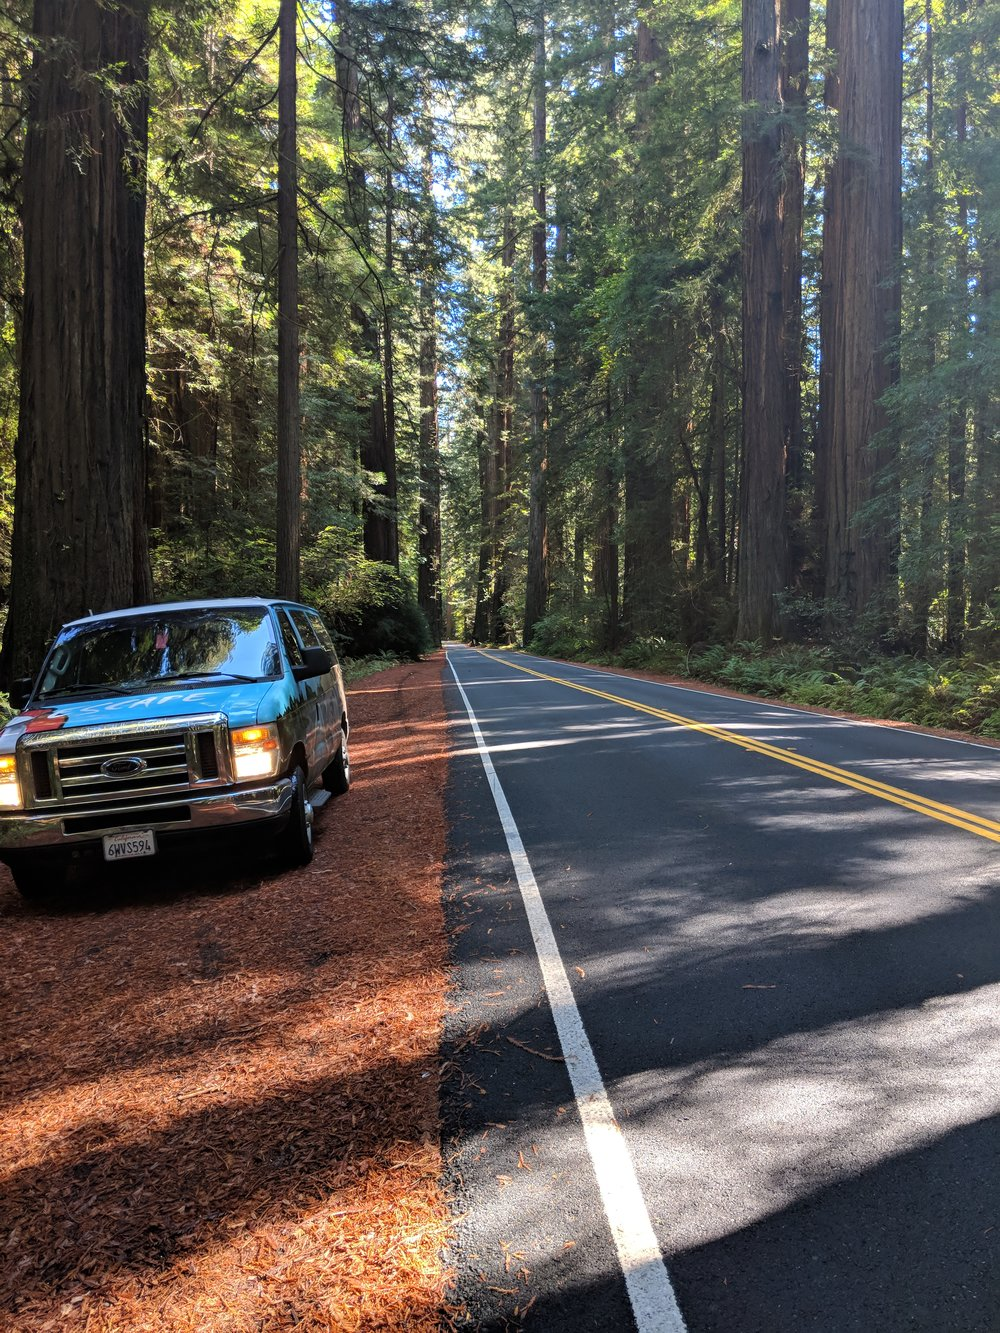 Roadside in the Avenue of the Giants, Humboldt Redwoods State Park